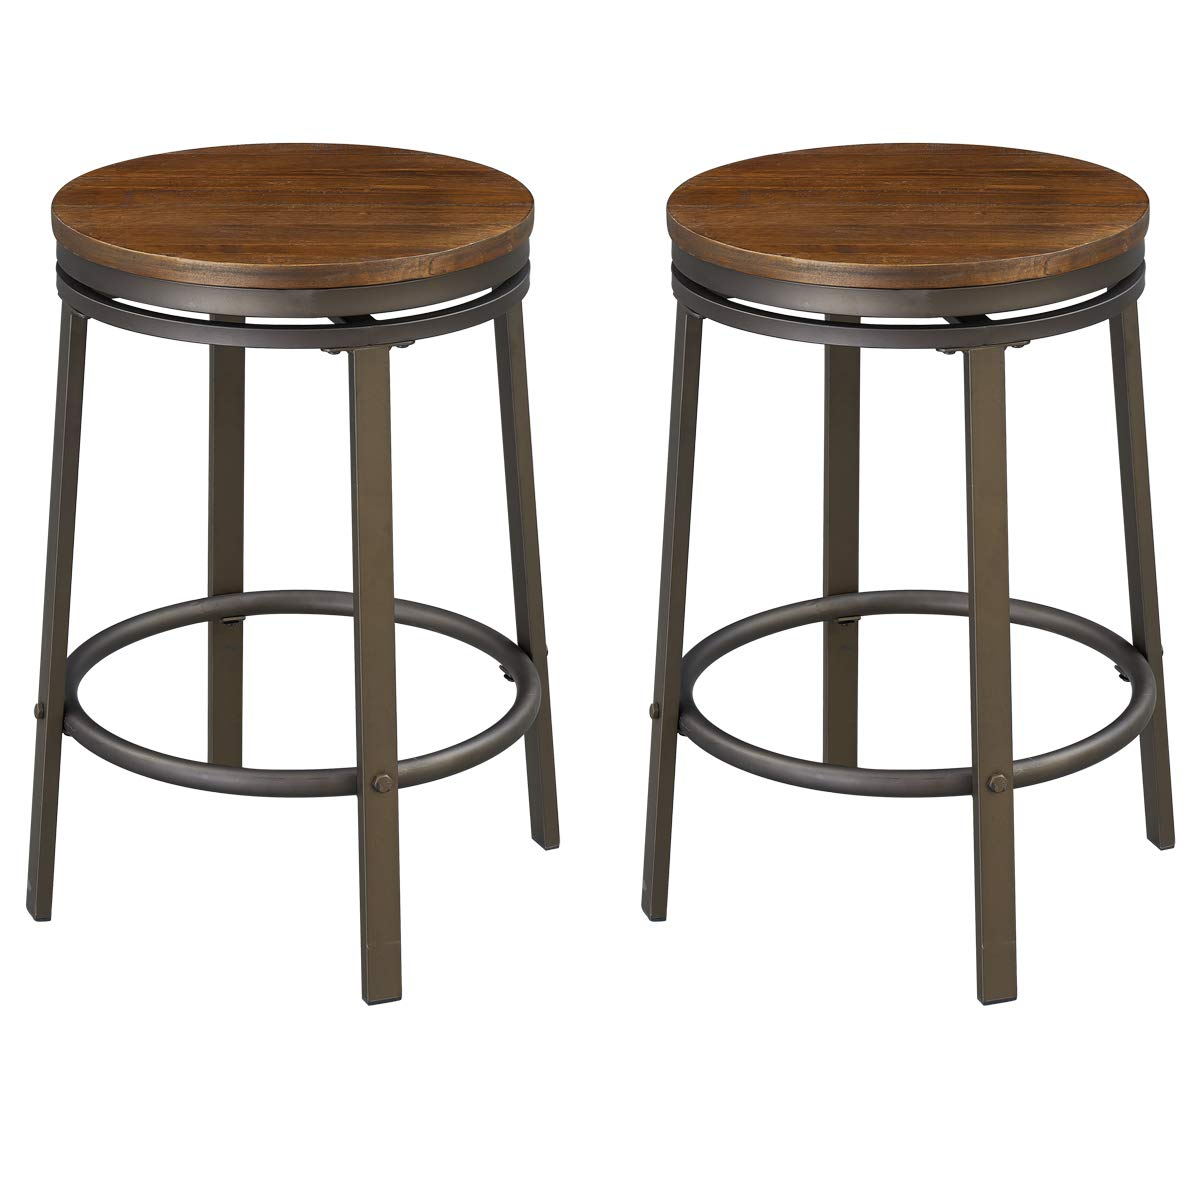 O&K FURNITURE 24-Inch Backless Swivel Bar Stool, Industrial Kitchen Counter Height Stool Chairs with Wooden Seat-Pub Height, Dark Brown, Set of 2 by O&K FURNITURE